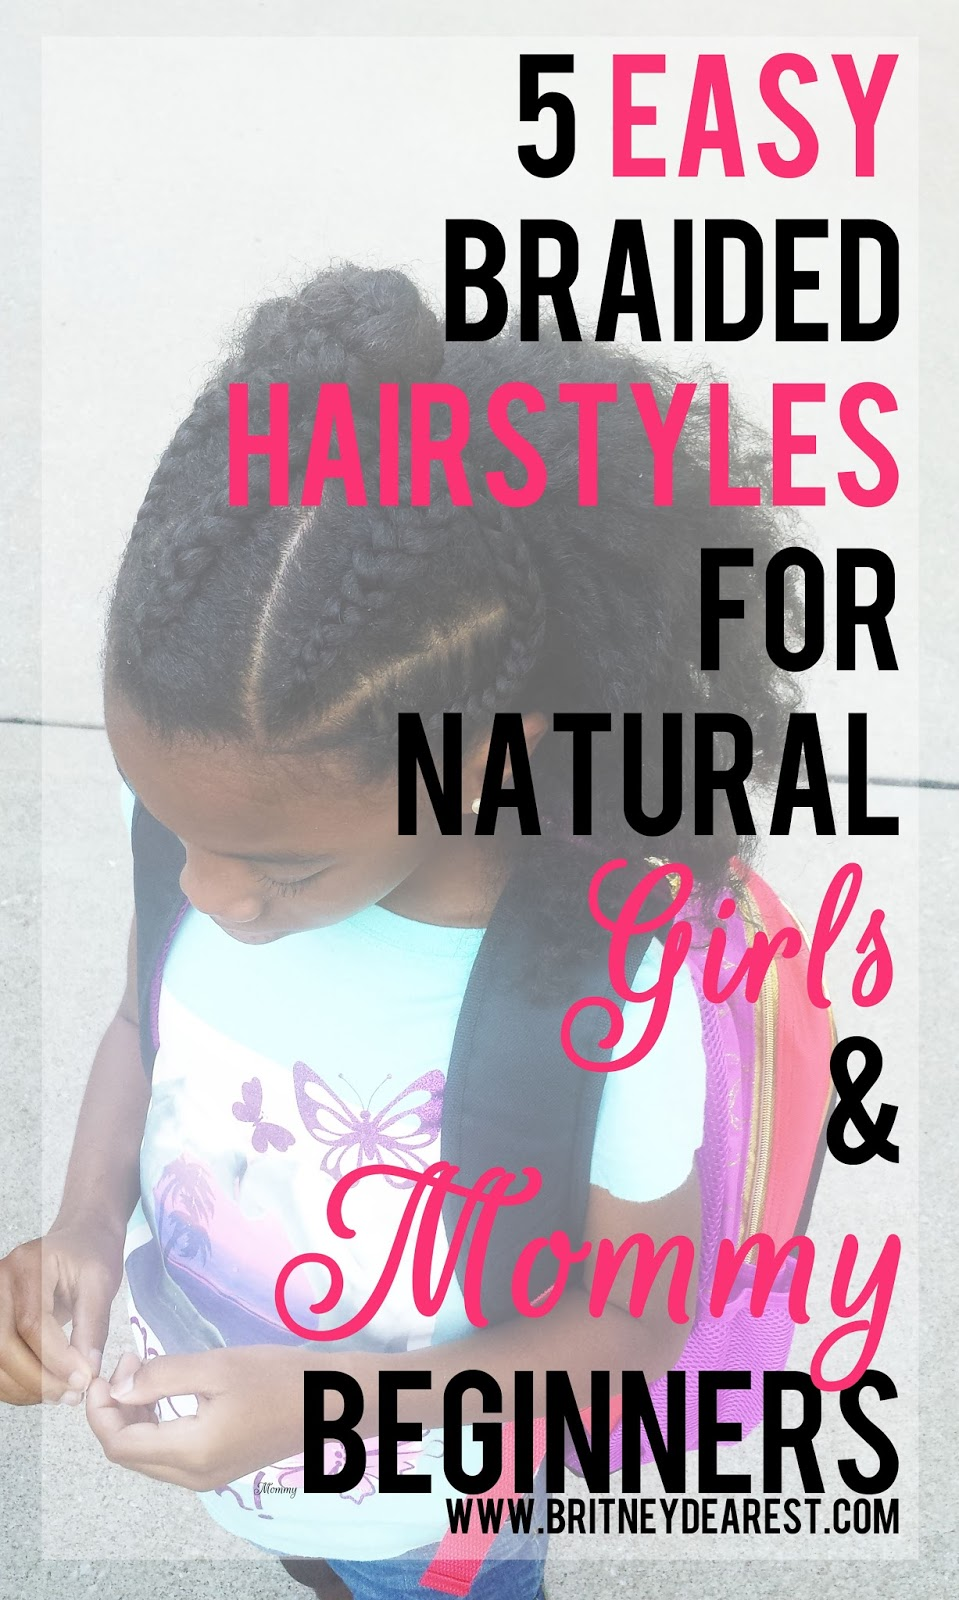 Awesome Britney Dearest 5 Easy Braided Hairstyles For Natural Girls Short Hairstyles Gunalazisus